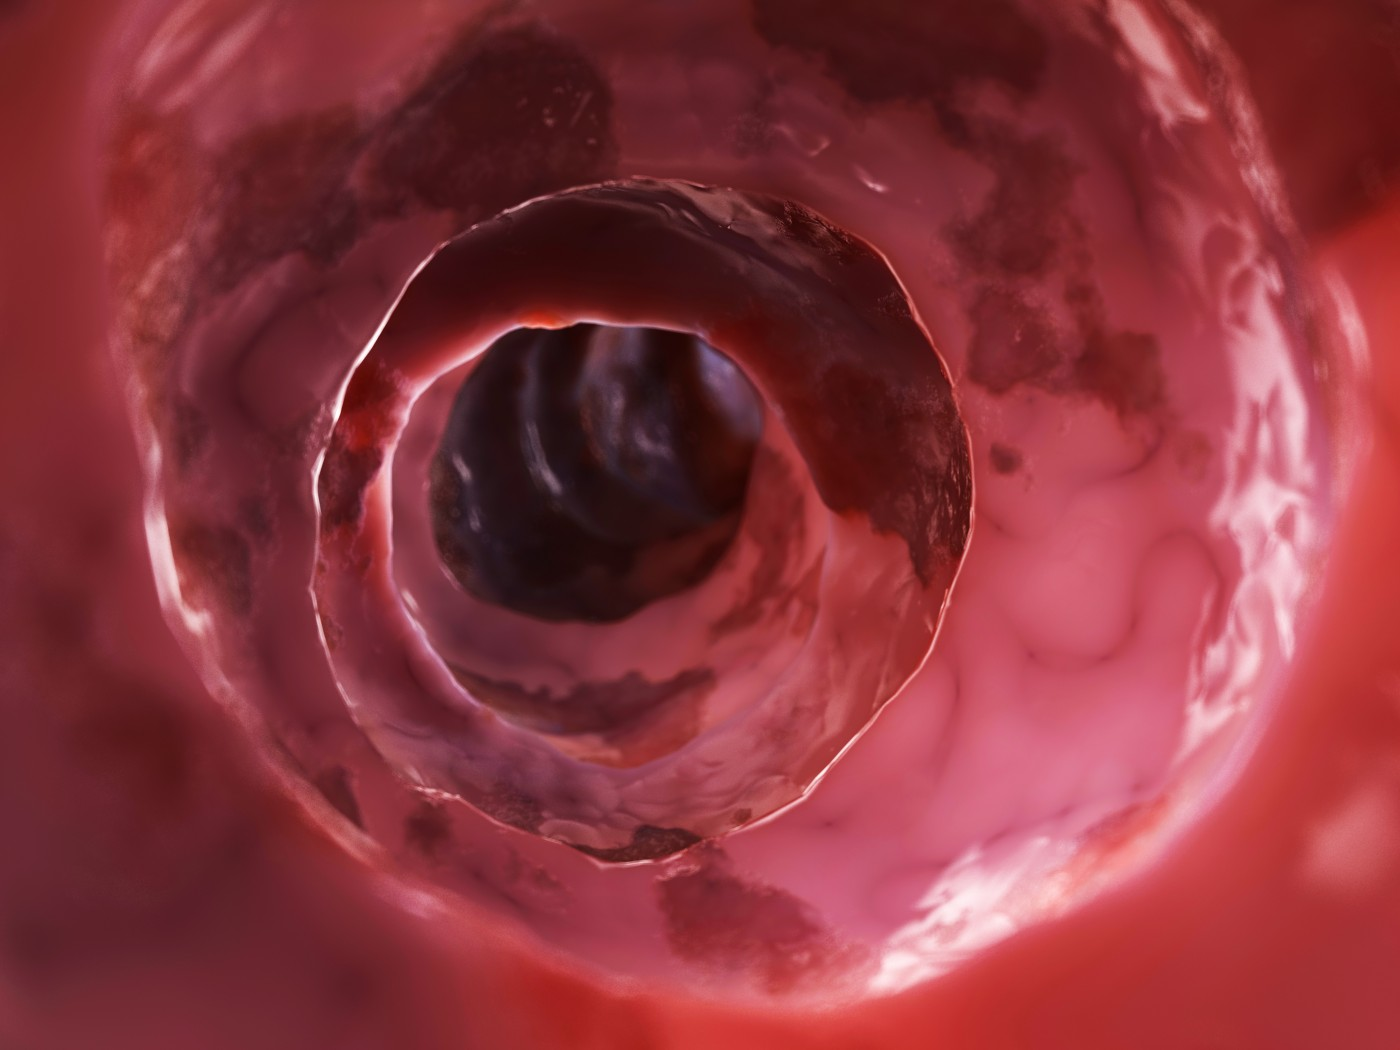 Researchers Find That Chromoendoscopy for IBD Surveillance Fails to Increase Dysplasia Detection